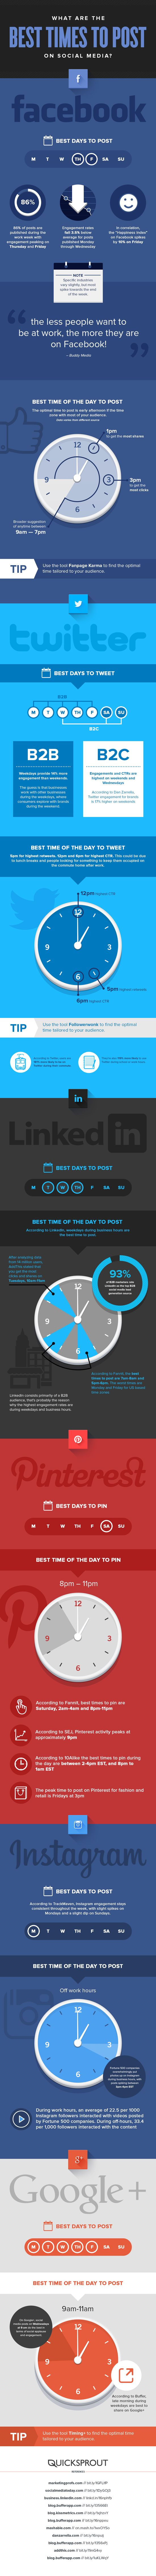 What are the best times to post social media - Social Media Toay